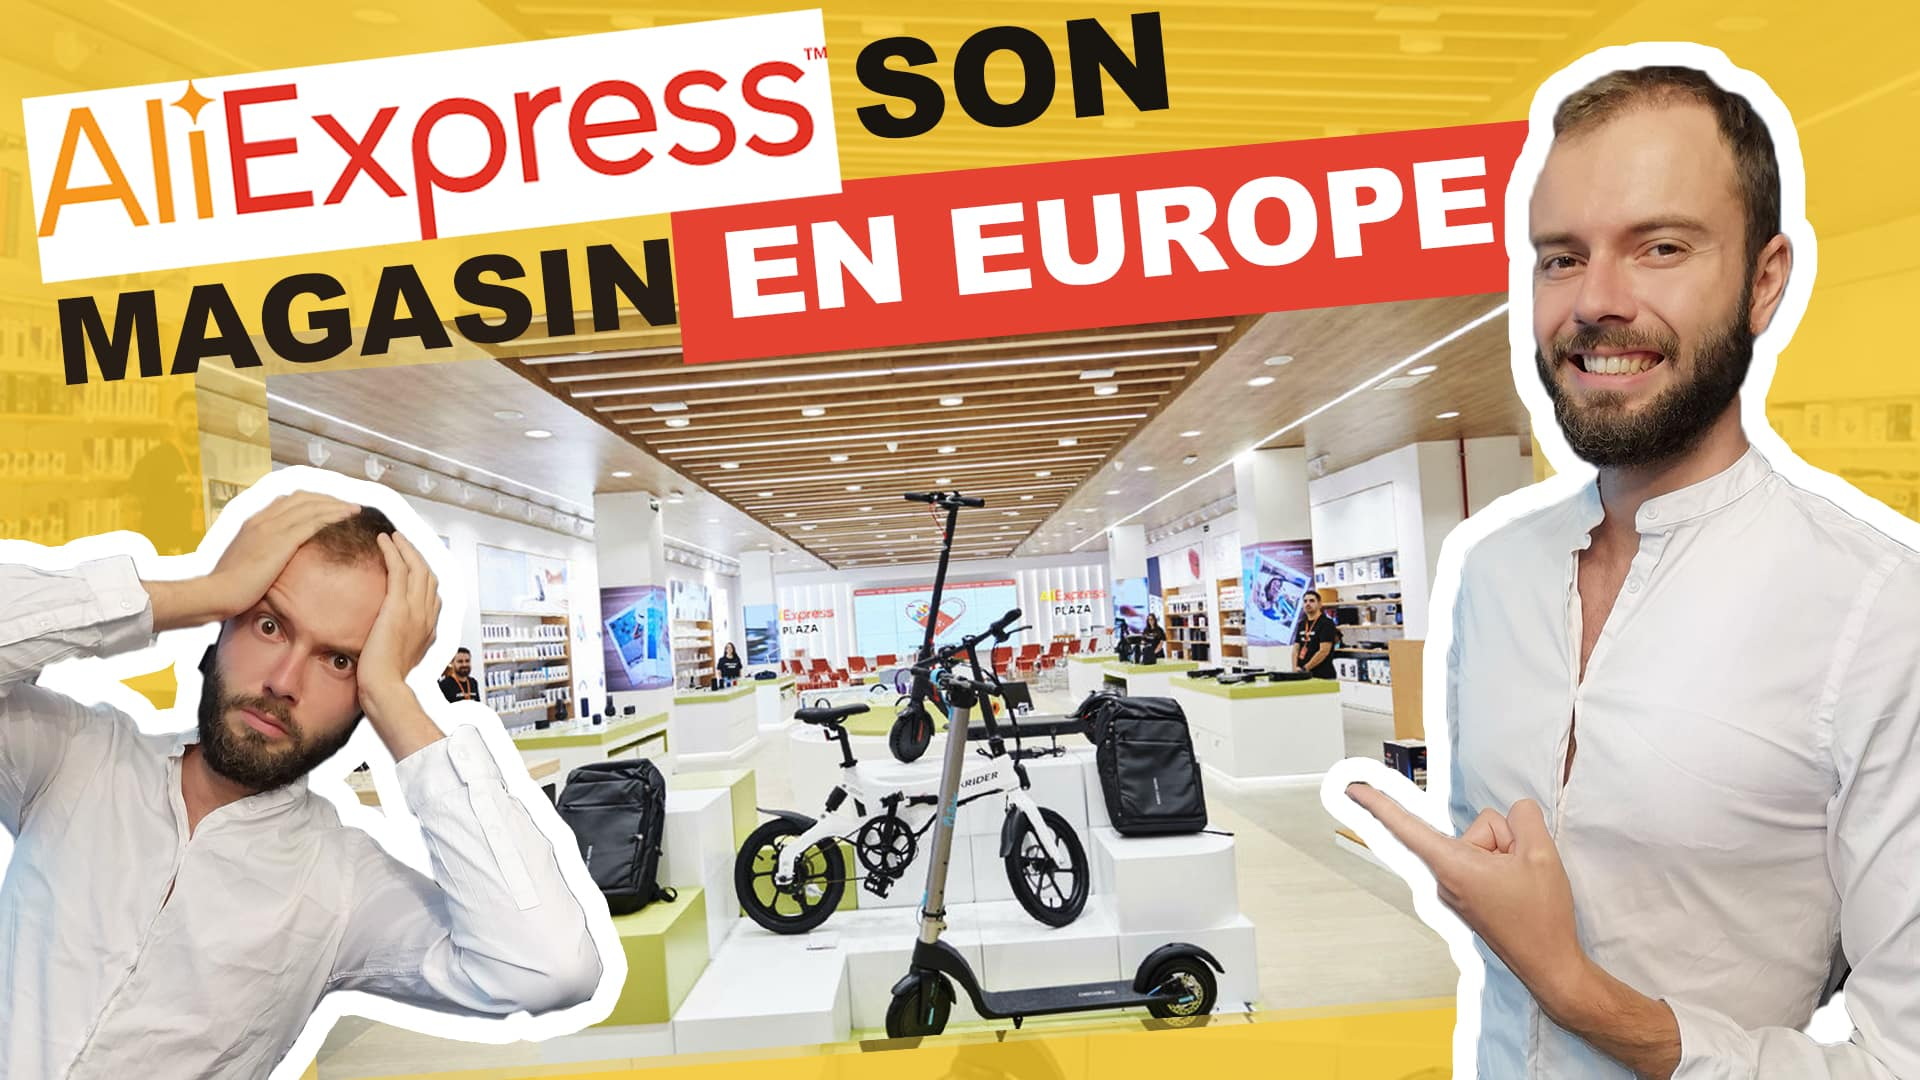 Aliexpress ouvre son magasin en europe à madrid, dit frank houbre, formateur ne dropshipping et shopify